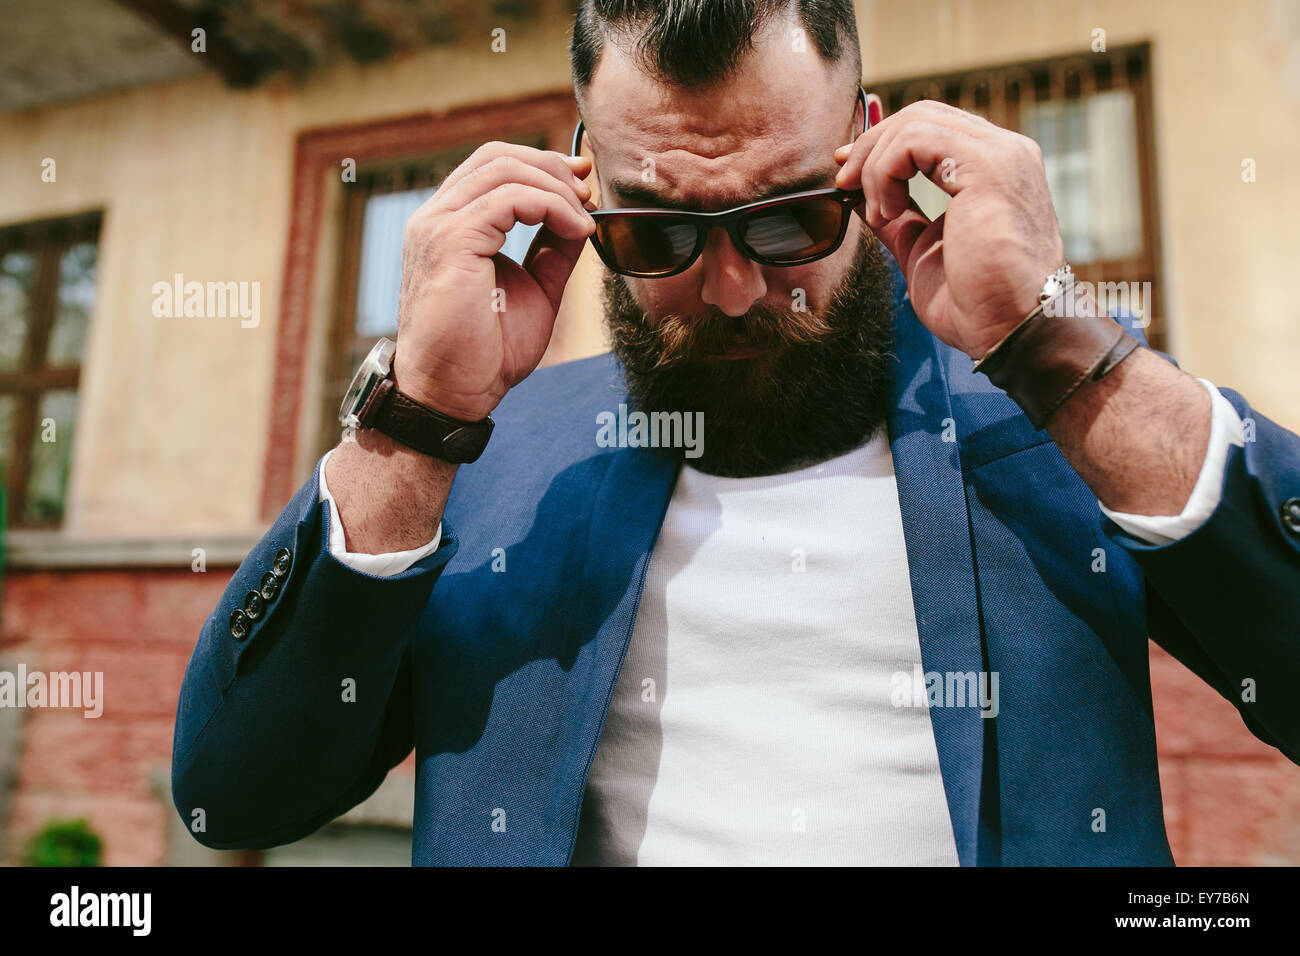 Stylish cool bearded man takes off his glasses - Stock Image